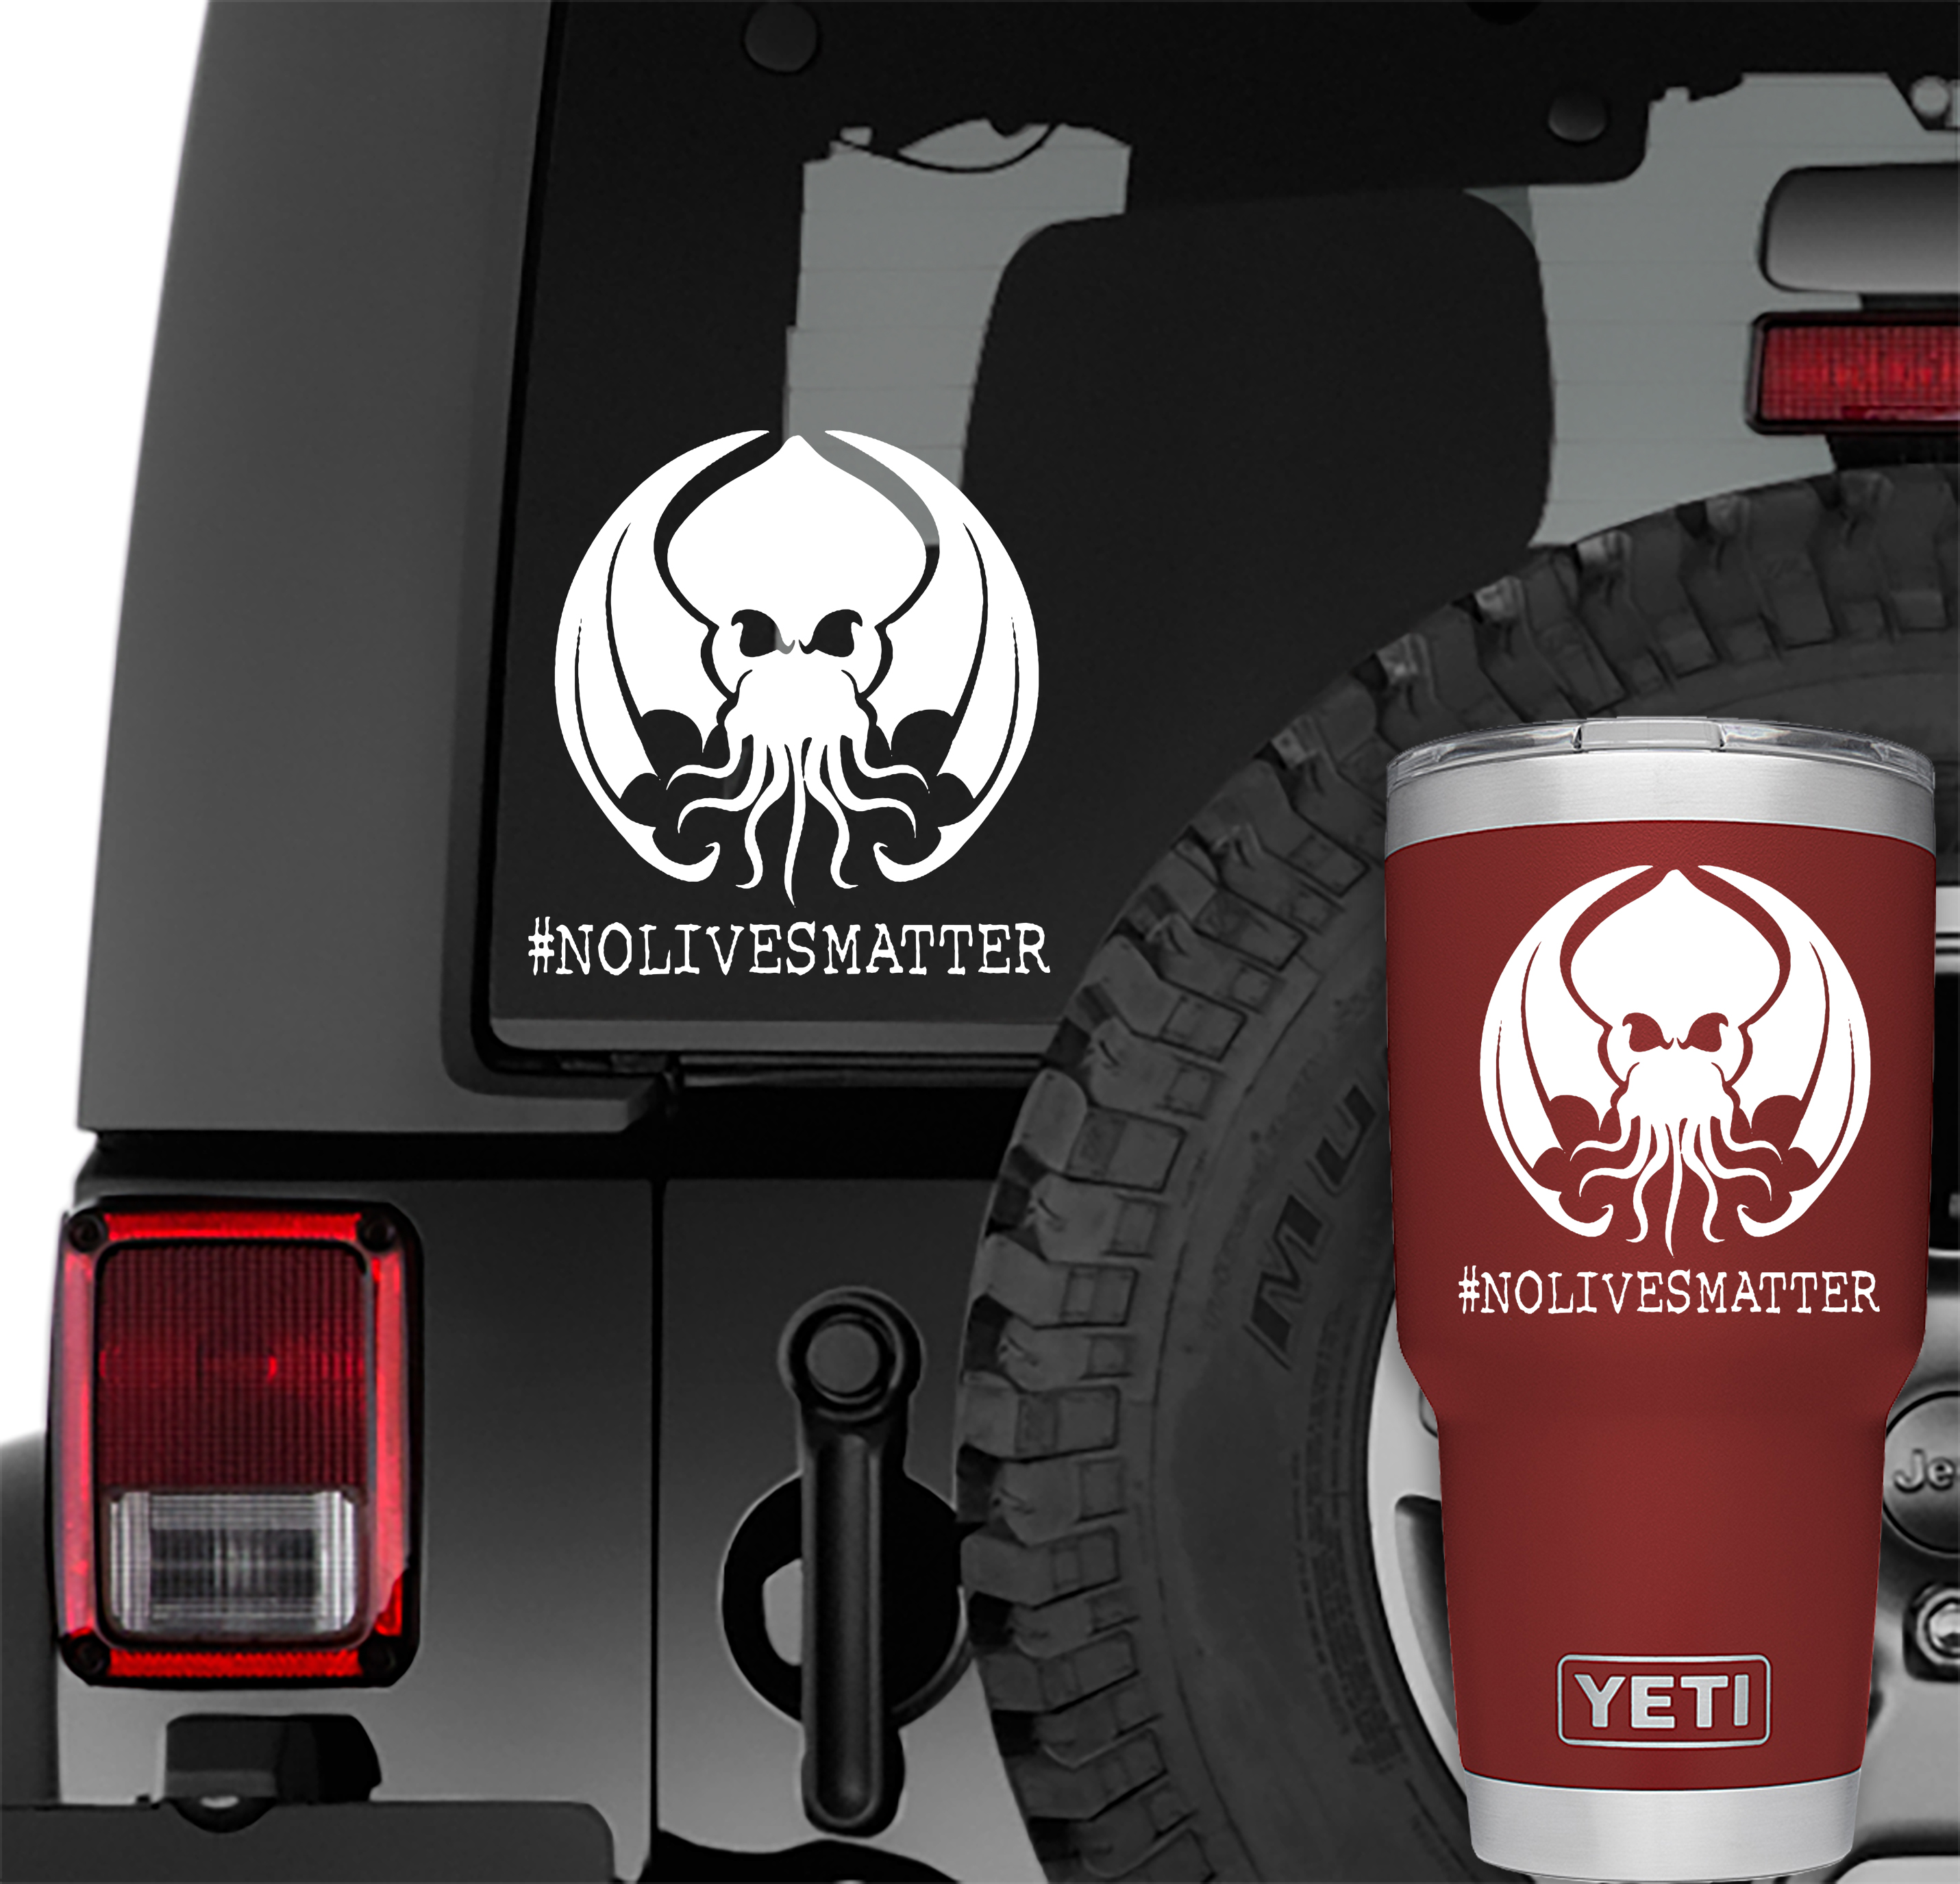 Cthulhu No Lives Matter Vinyl Decal | Cthulhu No Lives Matter Tumbler Decals